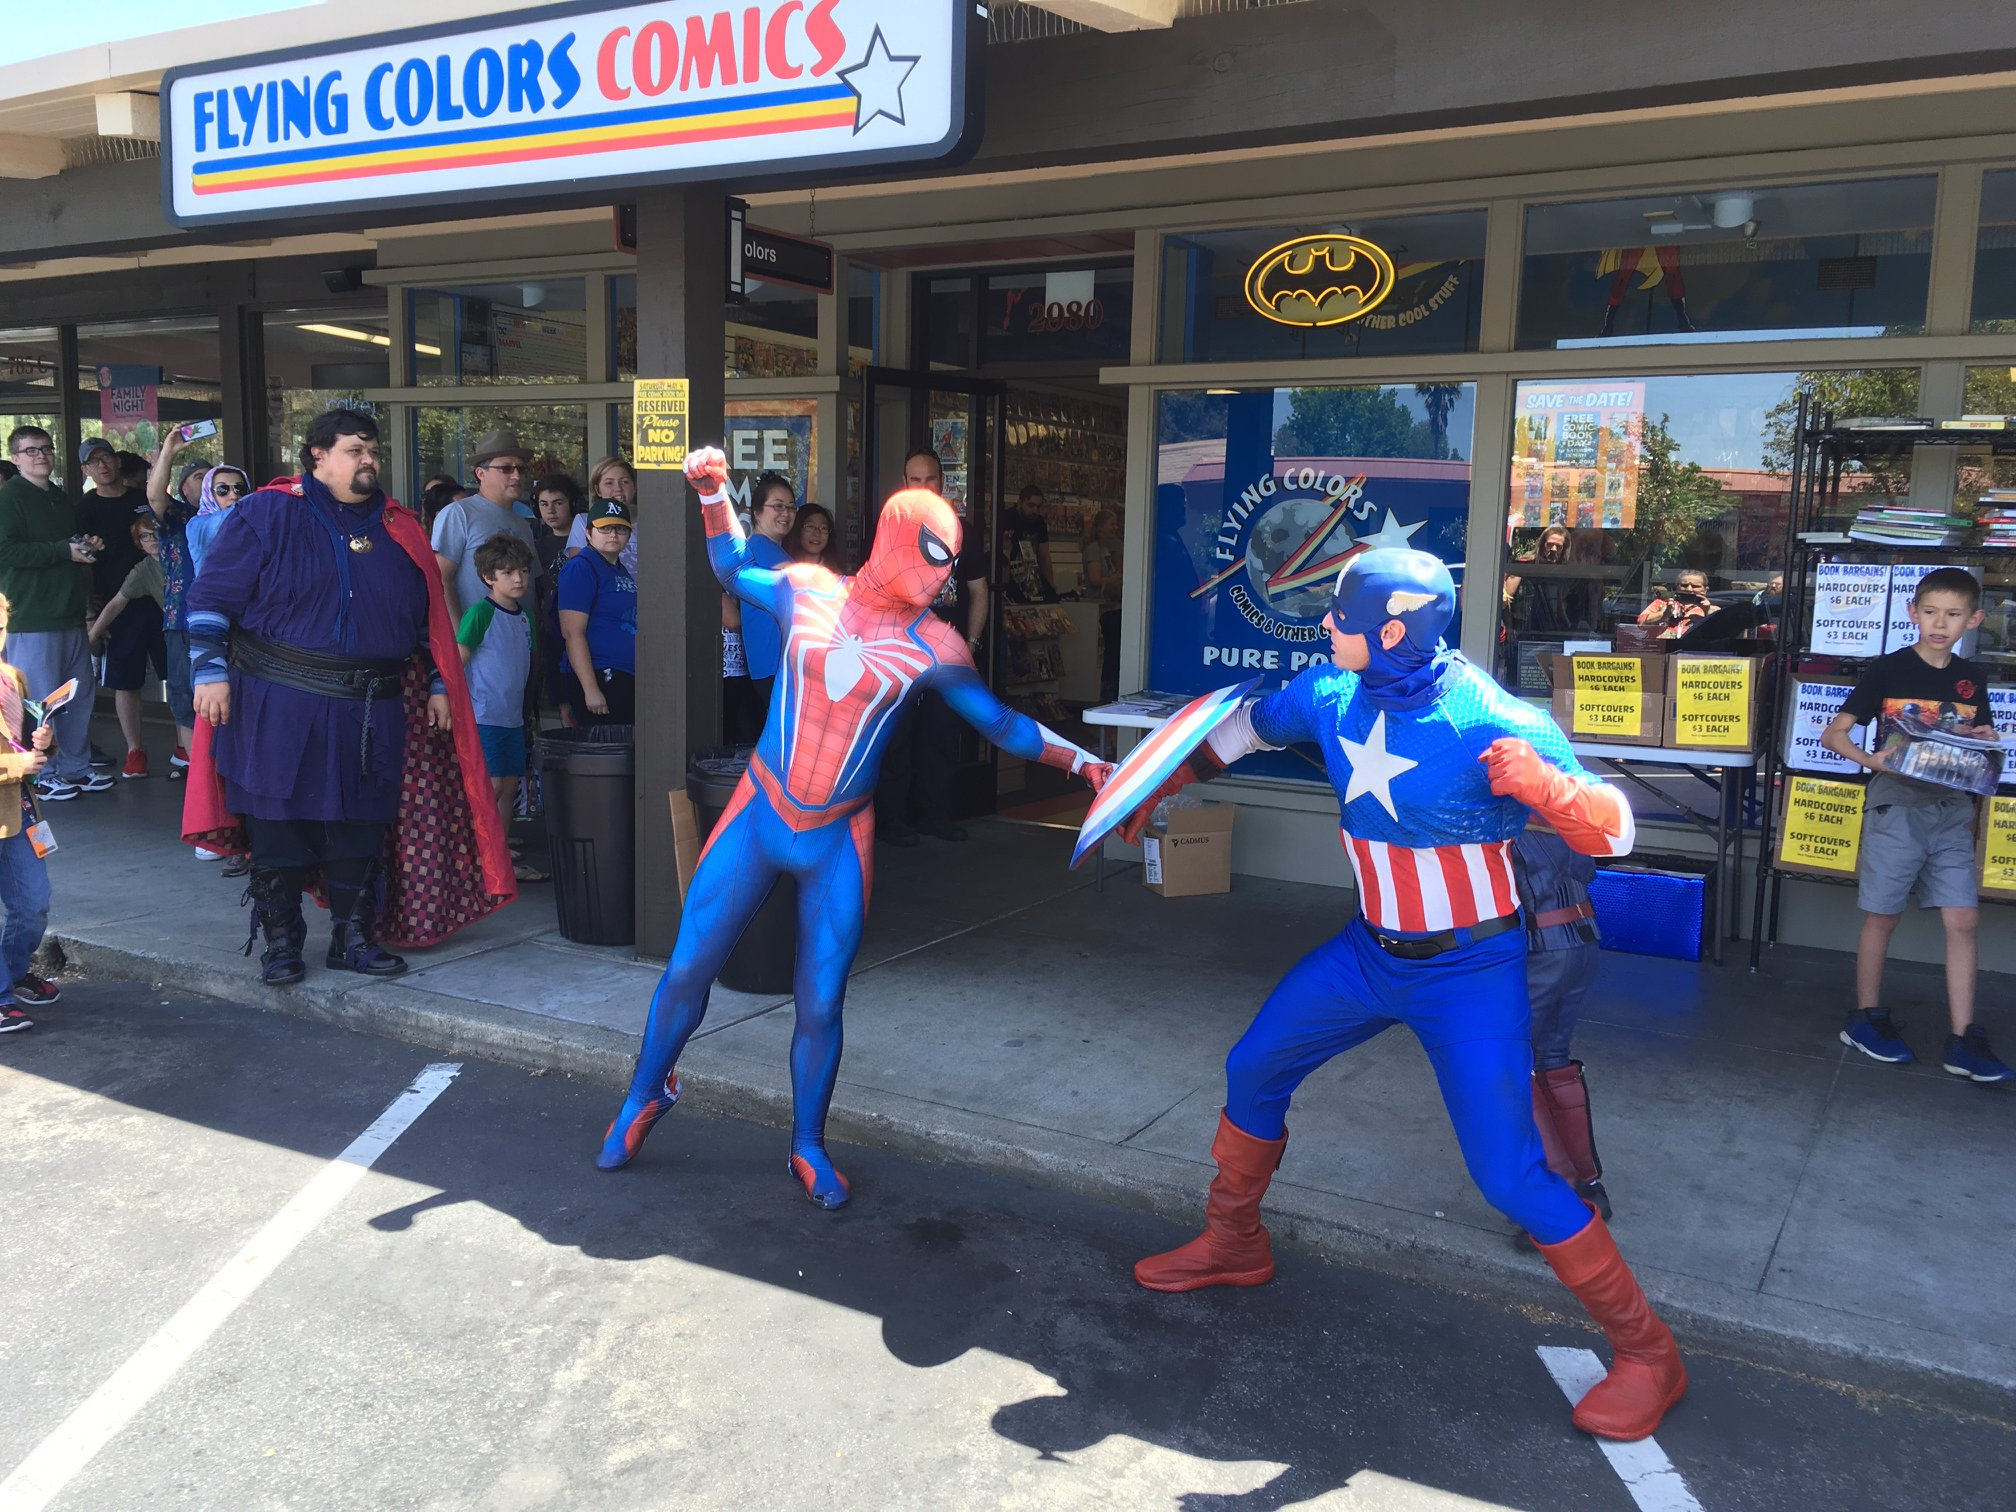 Free Comic Book Day, FCBD, event, photos